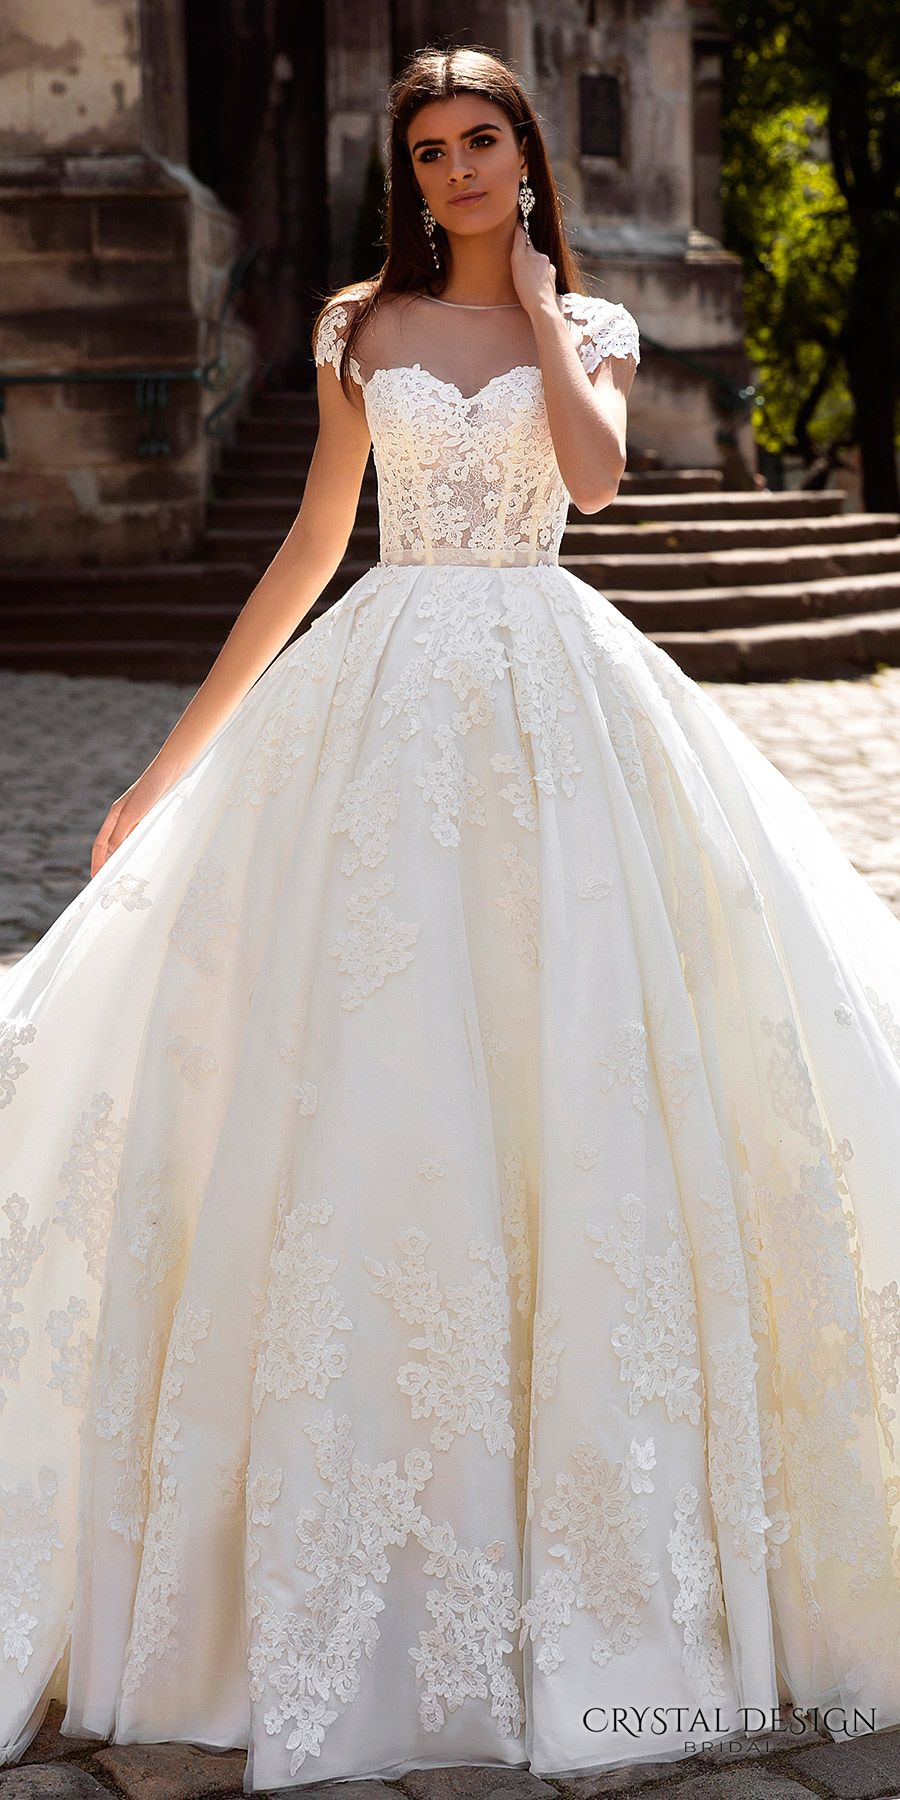 Crystal design wedding dresses casamento pinterest ball